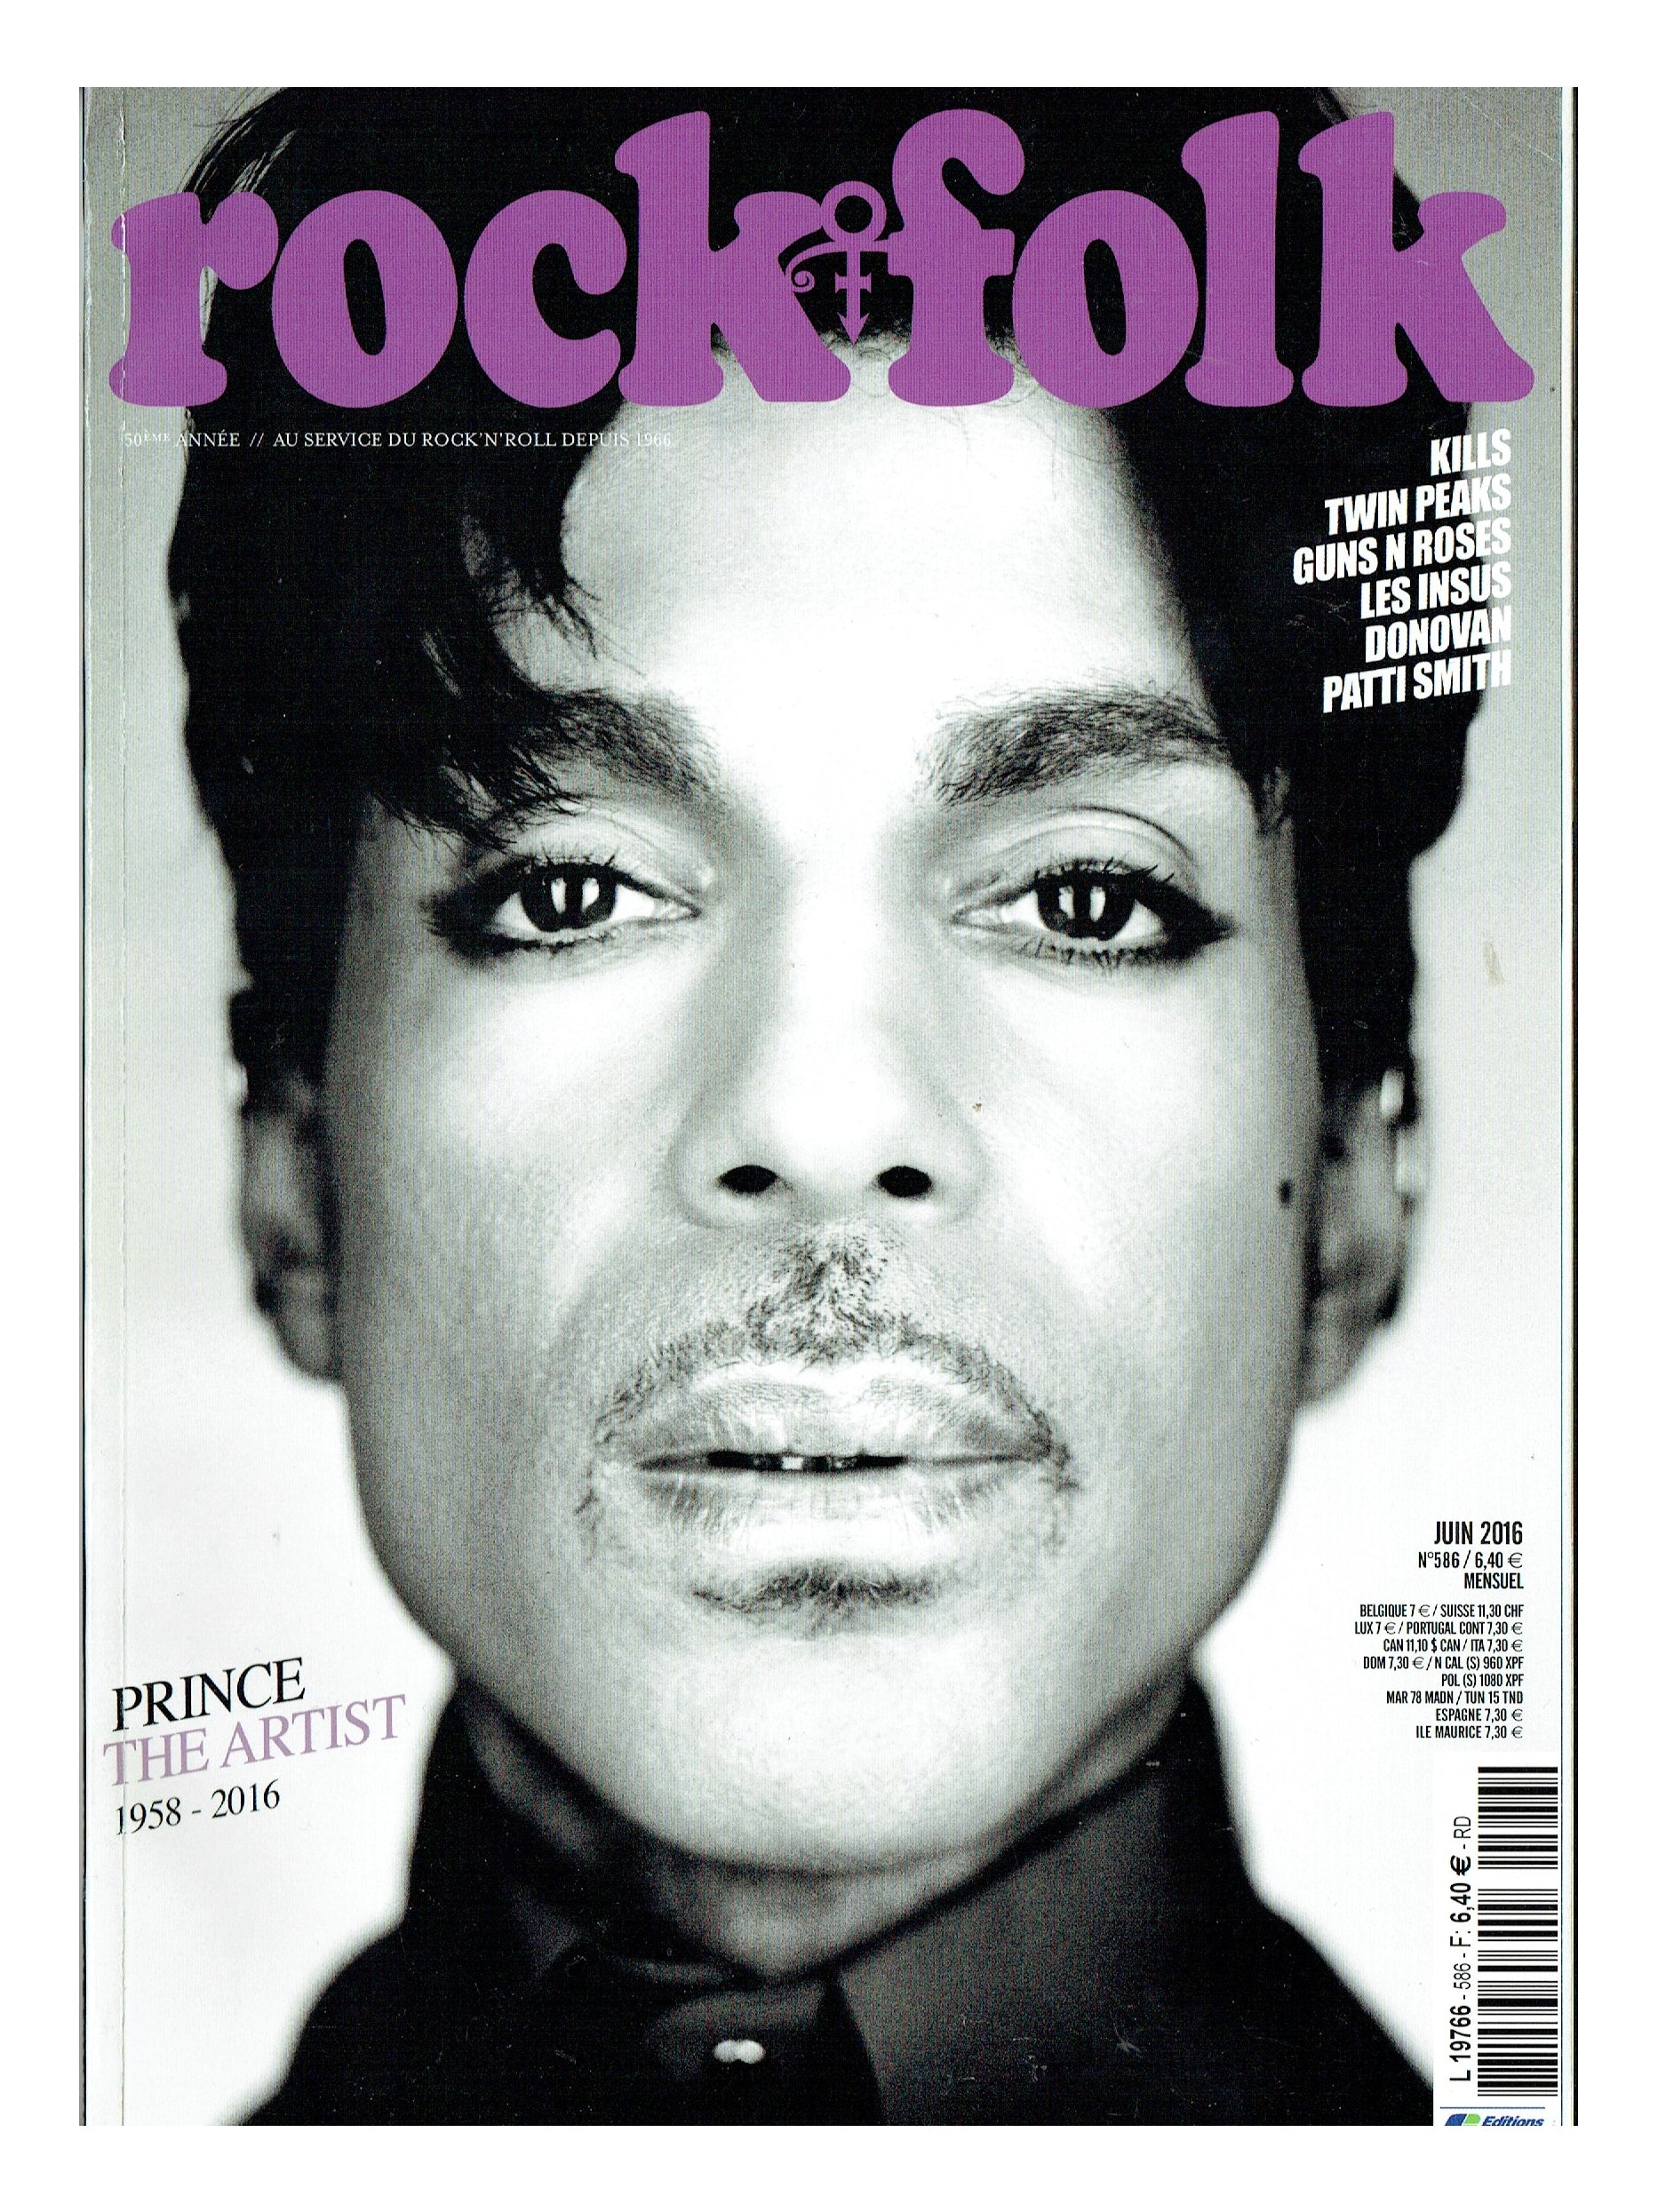 Prince Rock & Folk French Magazine Front Cover & 16 Page Article June 2016